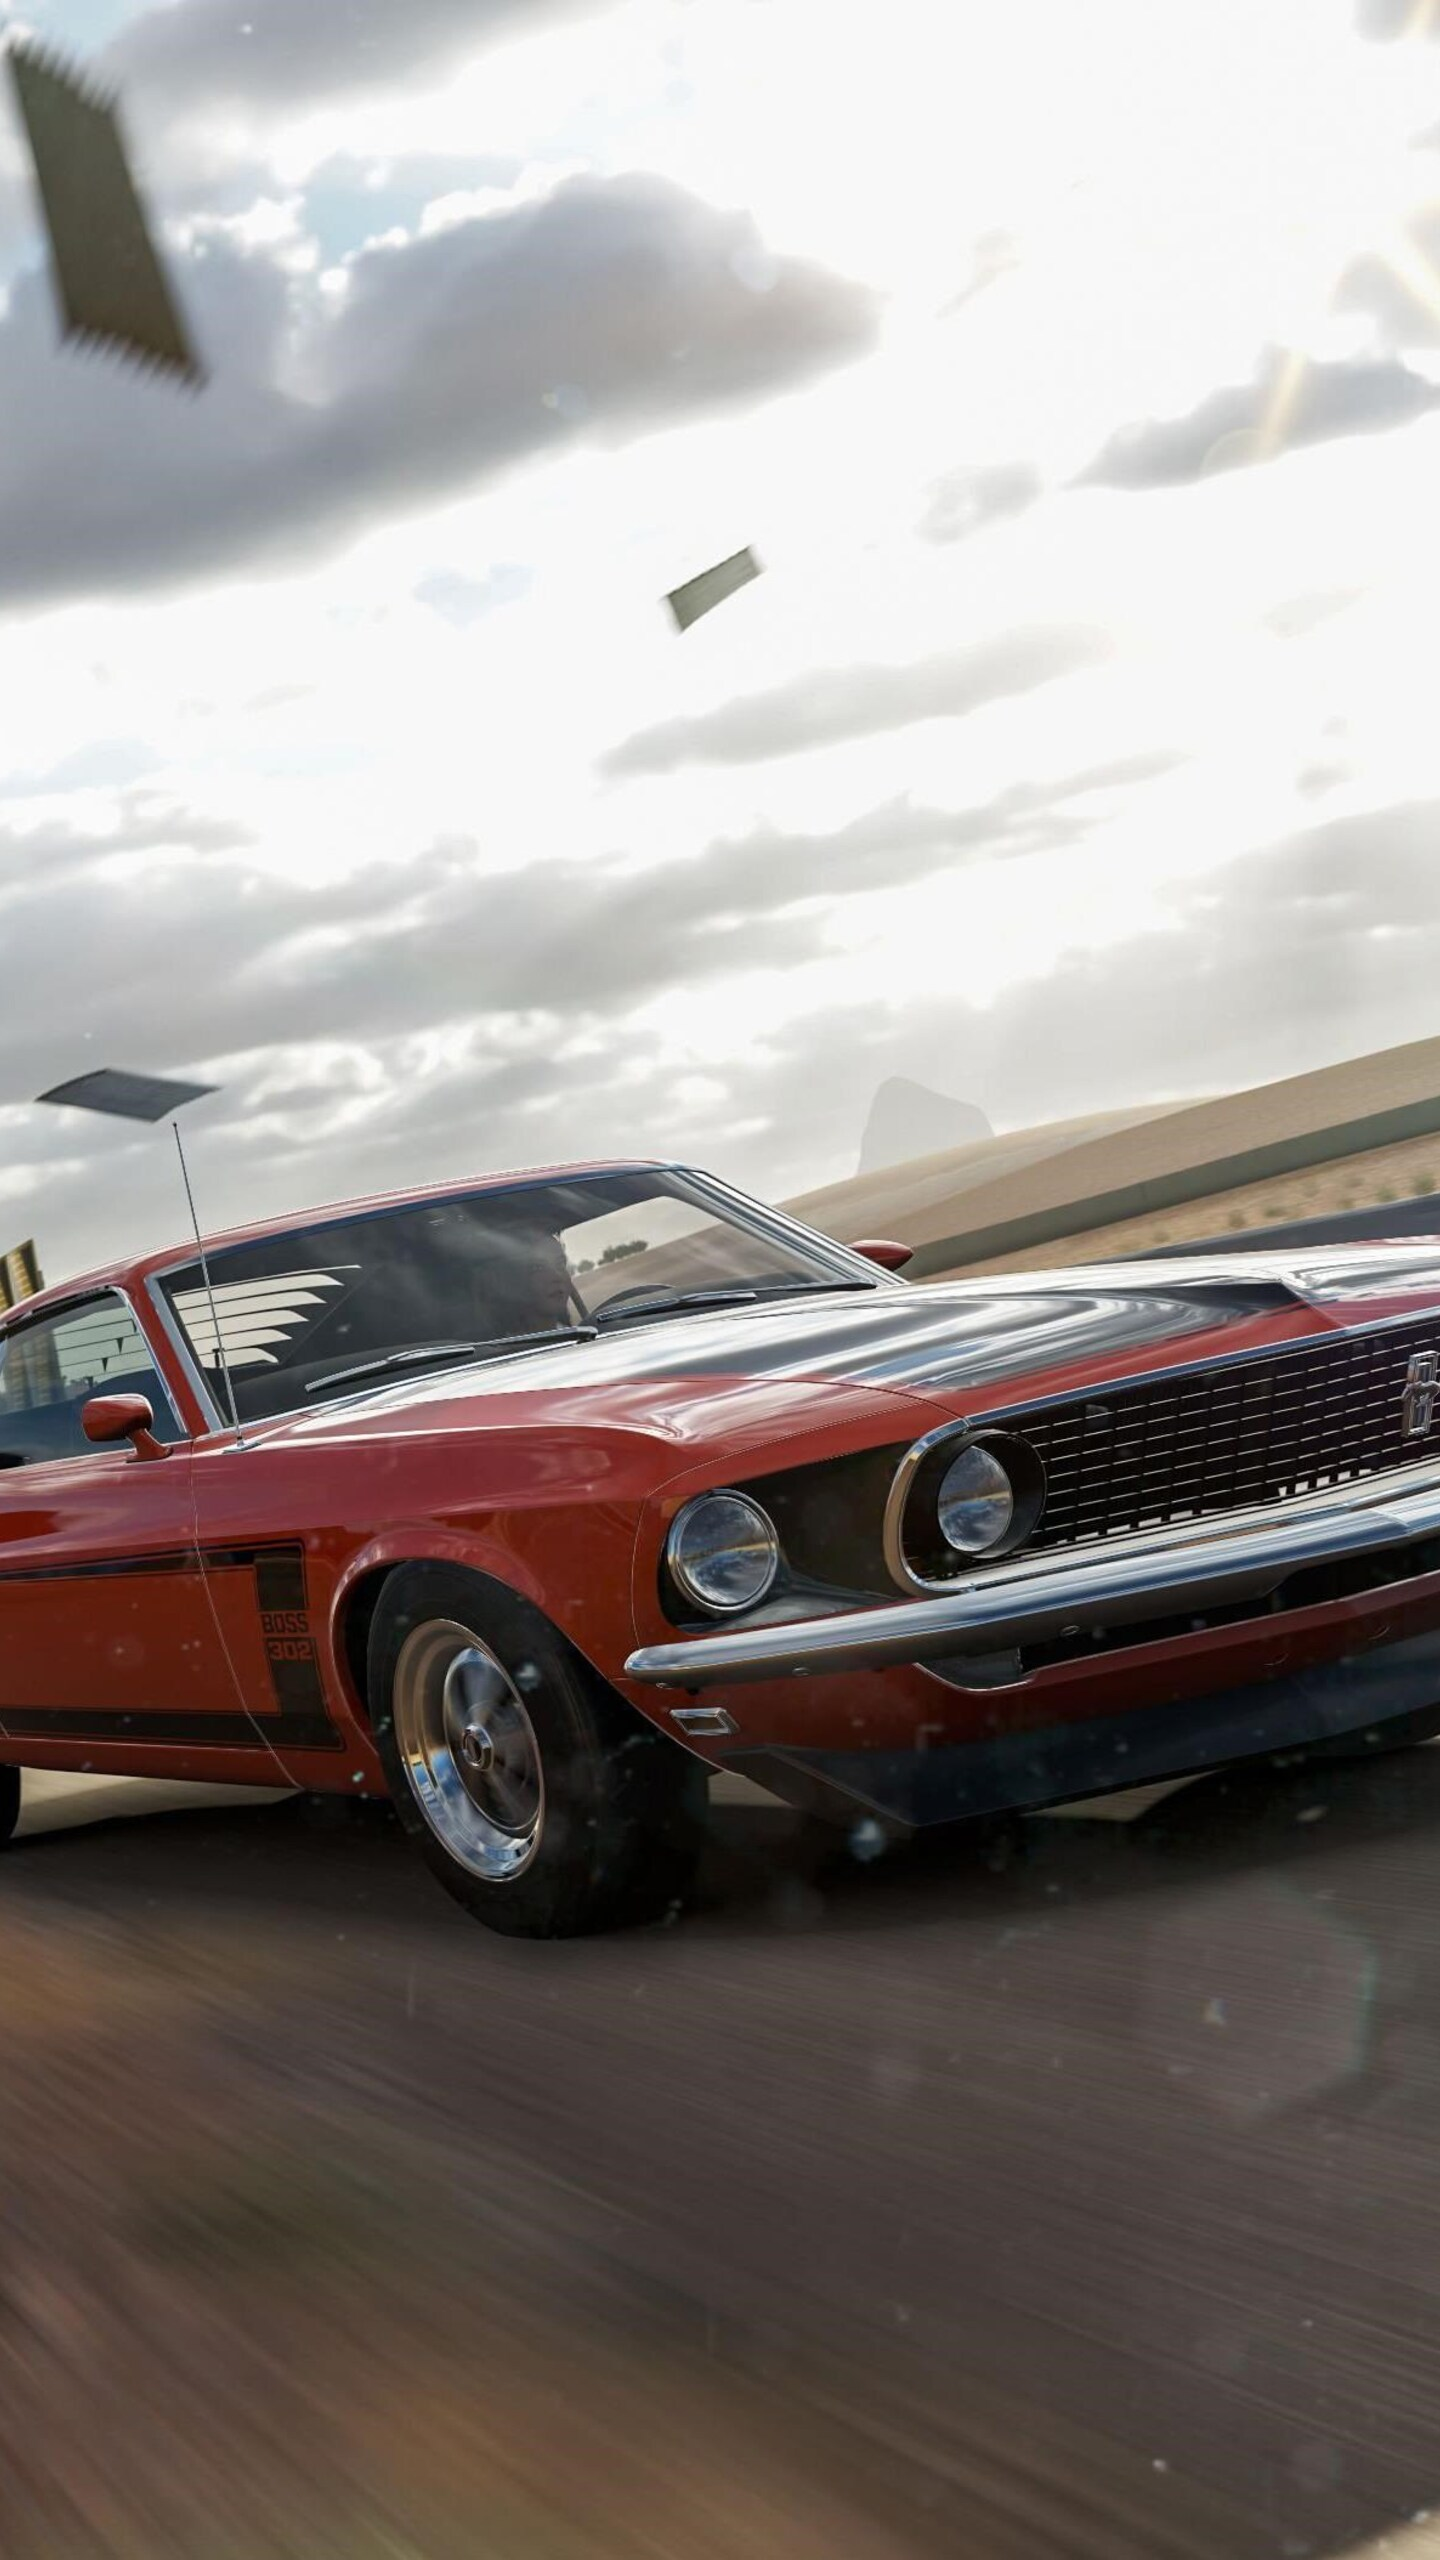 Download Forza Horizon Classic Car Hd Wallpapers In